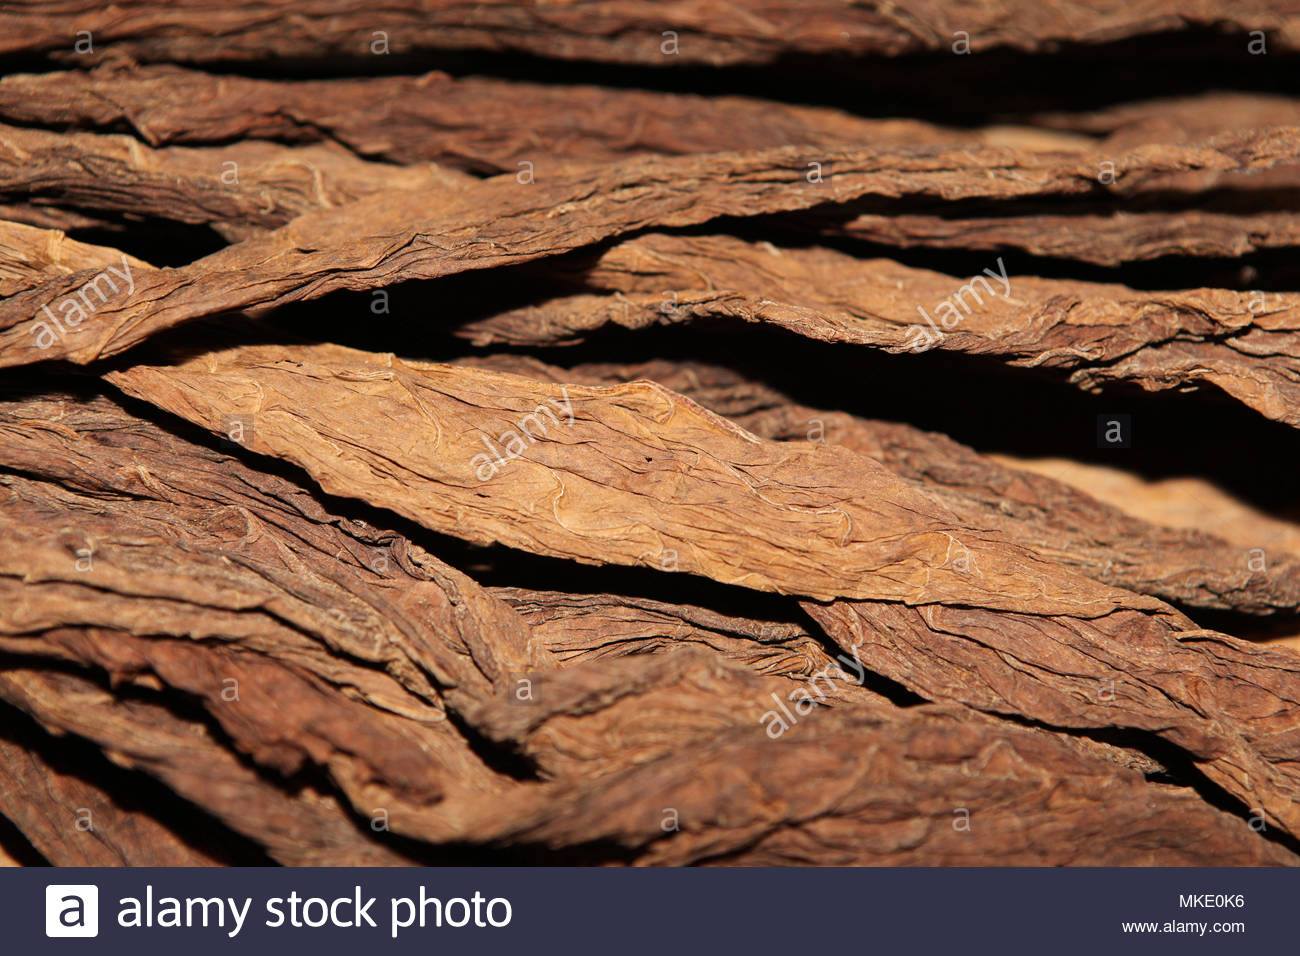 Dried tobacco leaves at the LaFlor Dominicana Cigar Factory in the Dominican Republic. - Stock Image